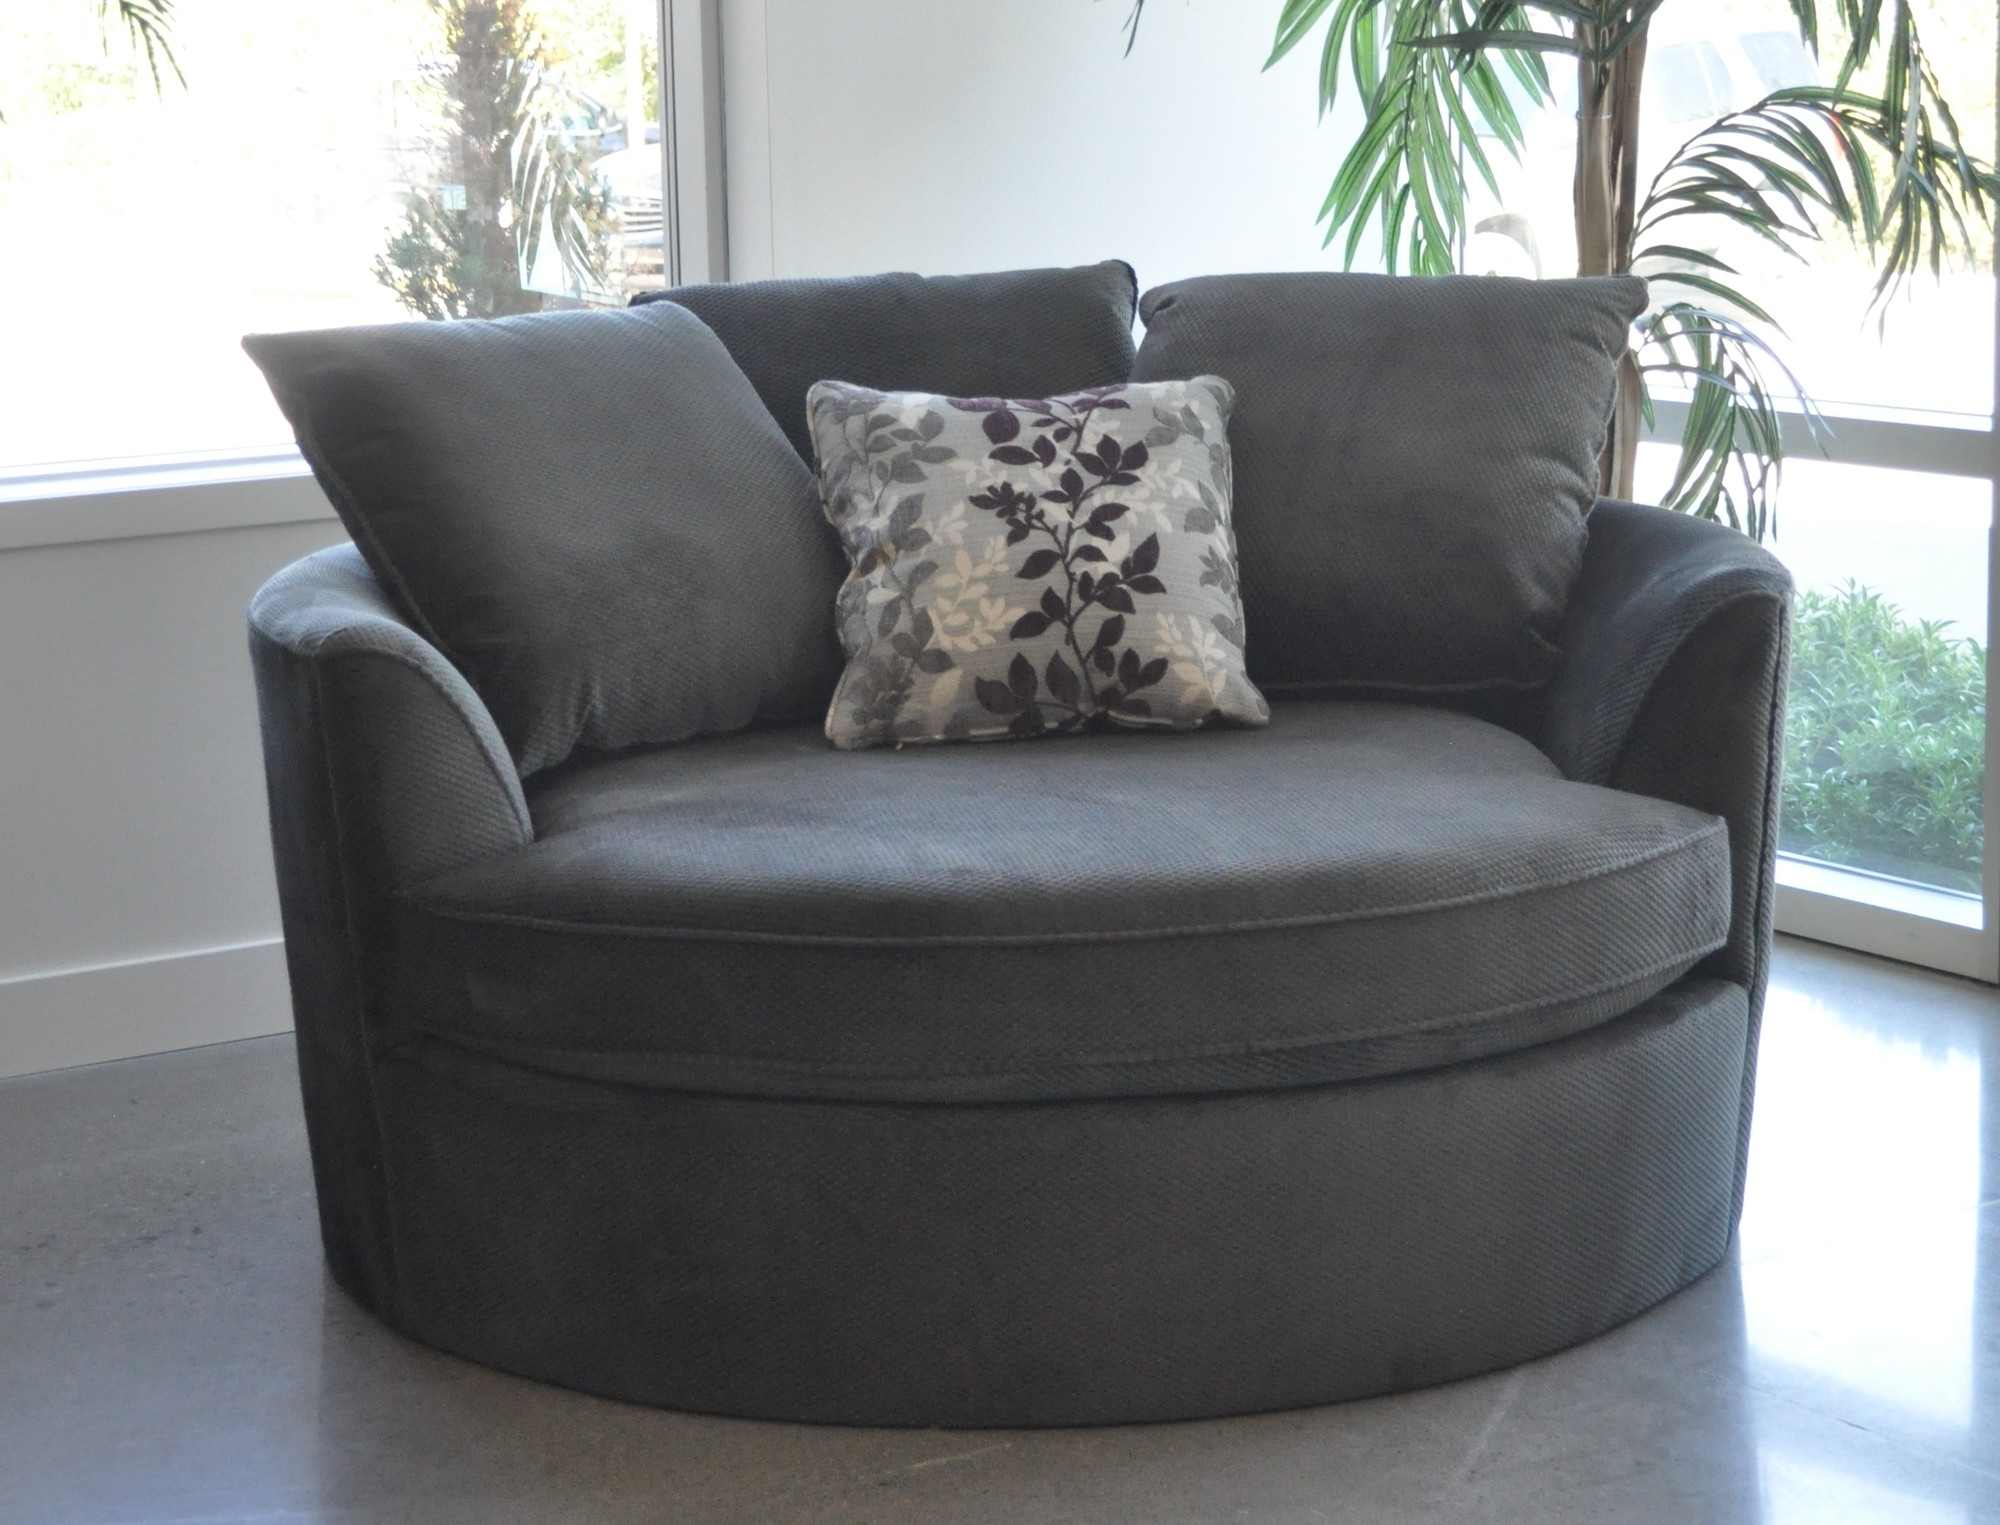 Round Sofas Pertaining To Newest Sofa : Round Single Sofa Chair Buy Round Sofa Chair Round Sofa (View 13 of 15)